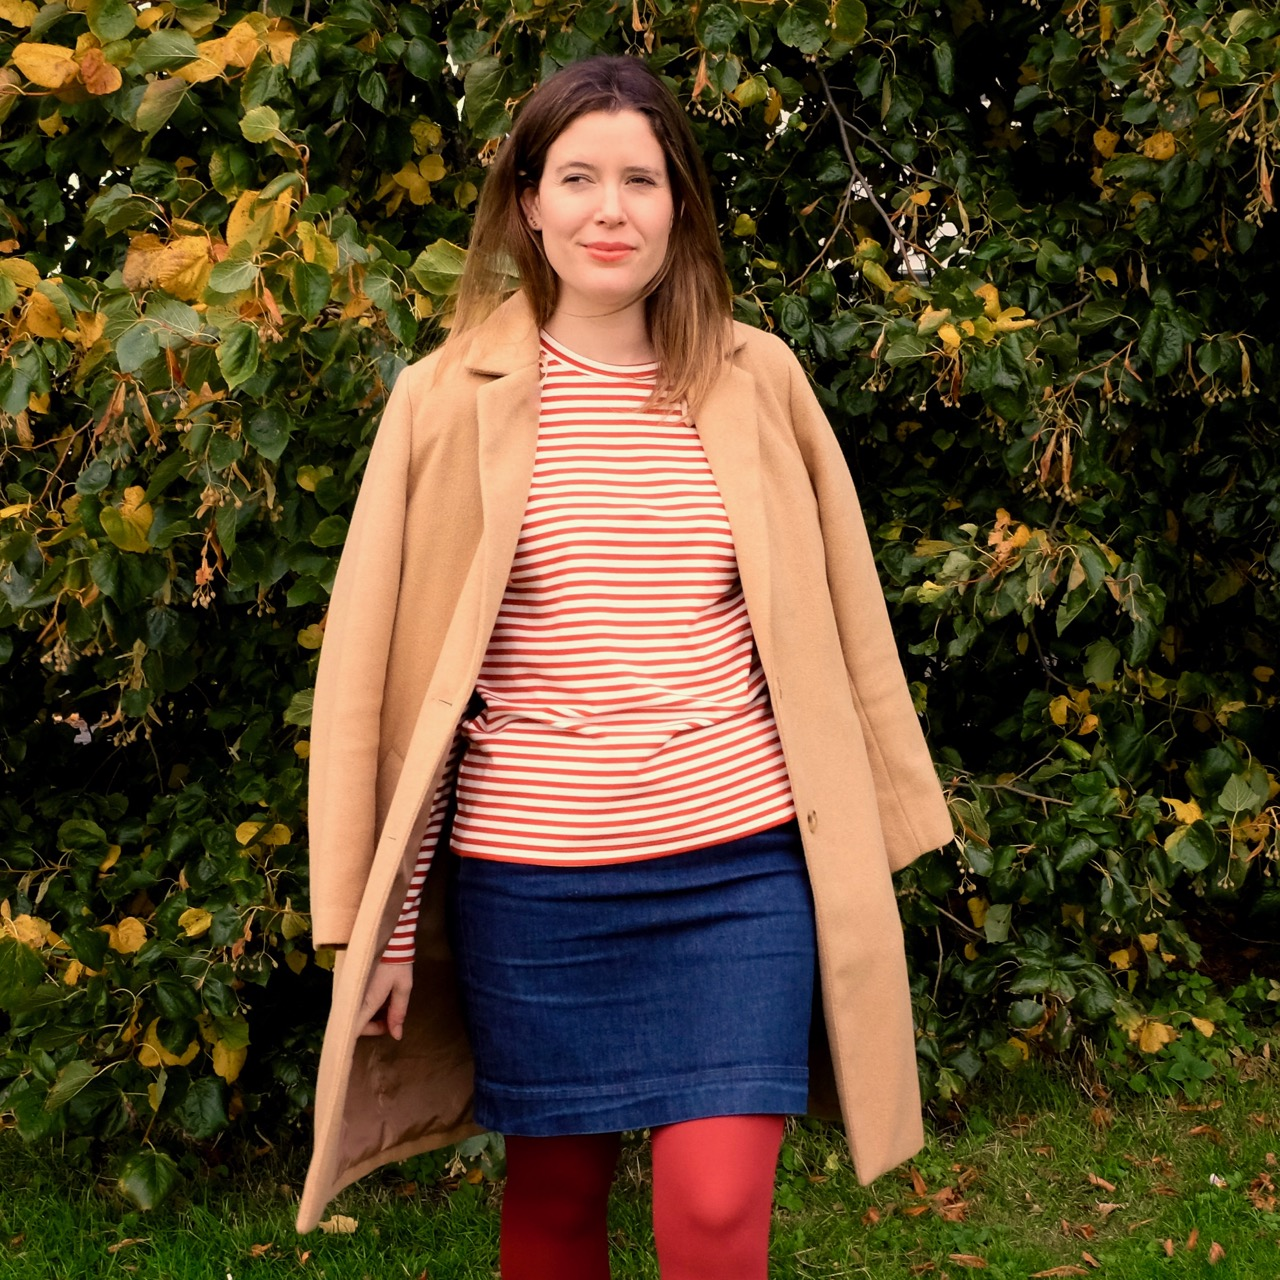 Red stripy top and red tights